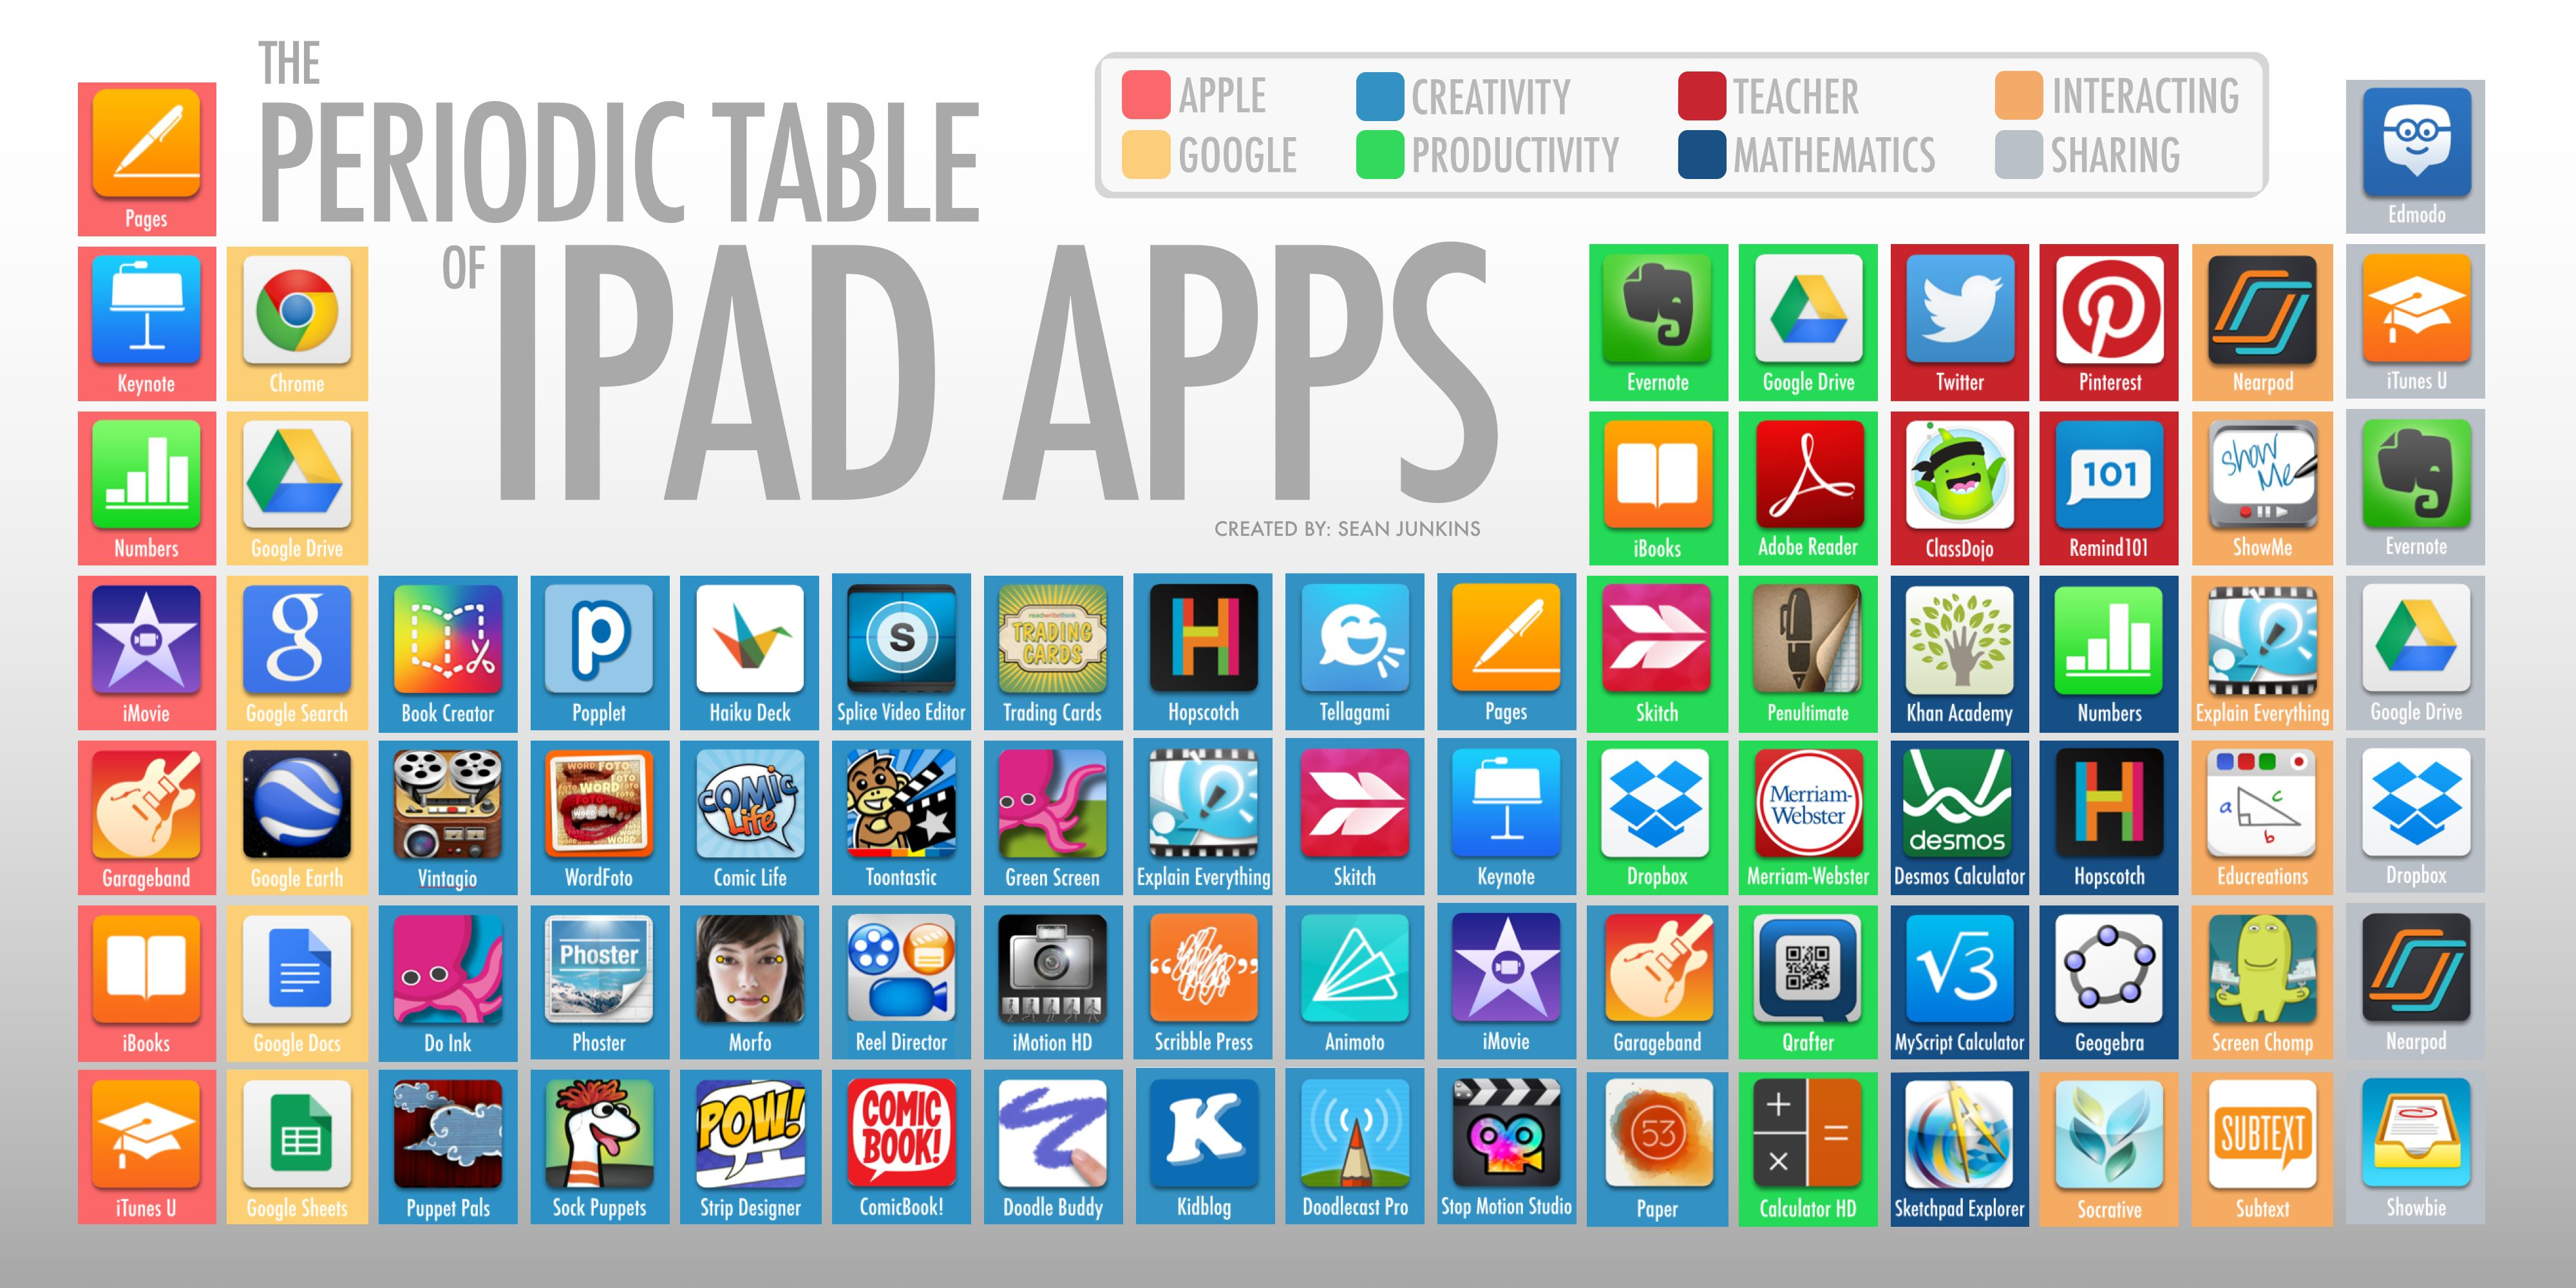 Periodic table ipad apps great organization of apps by apple periodic table ipad apps great organization of apps by apple google creativity productivity teacher mathematics interacting and sharing ve gamestrikefo Images